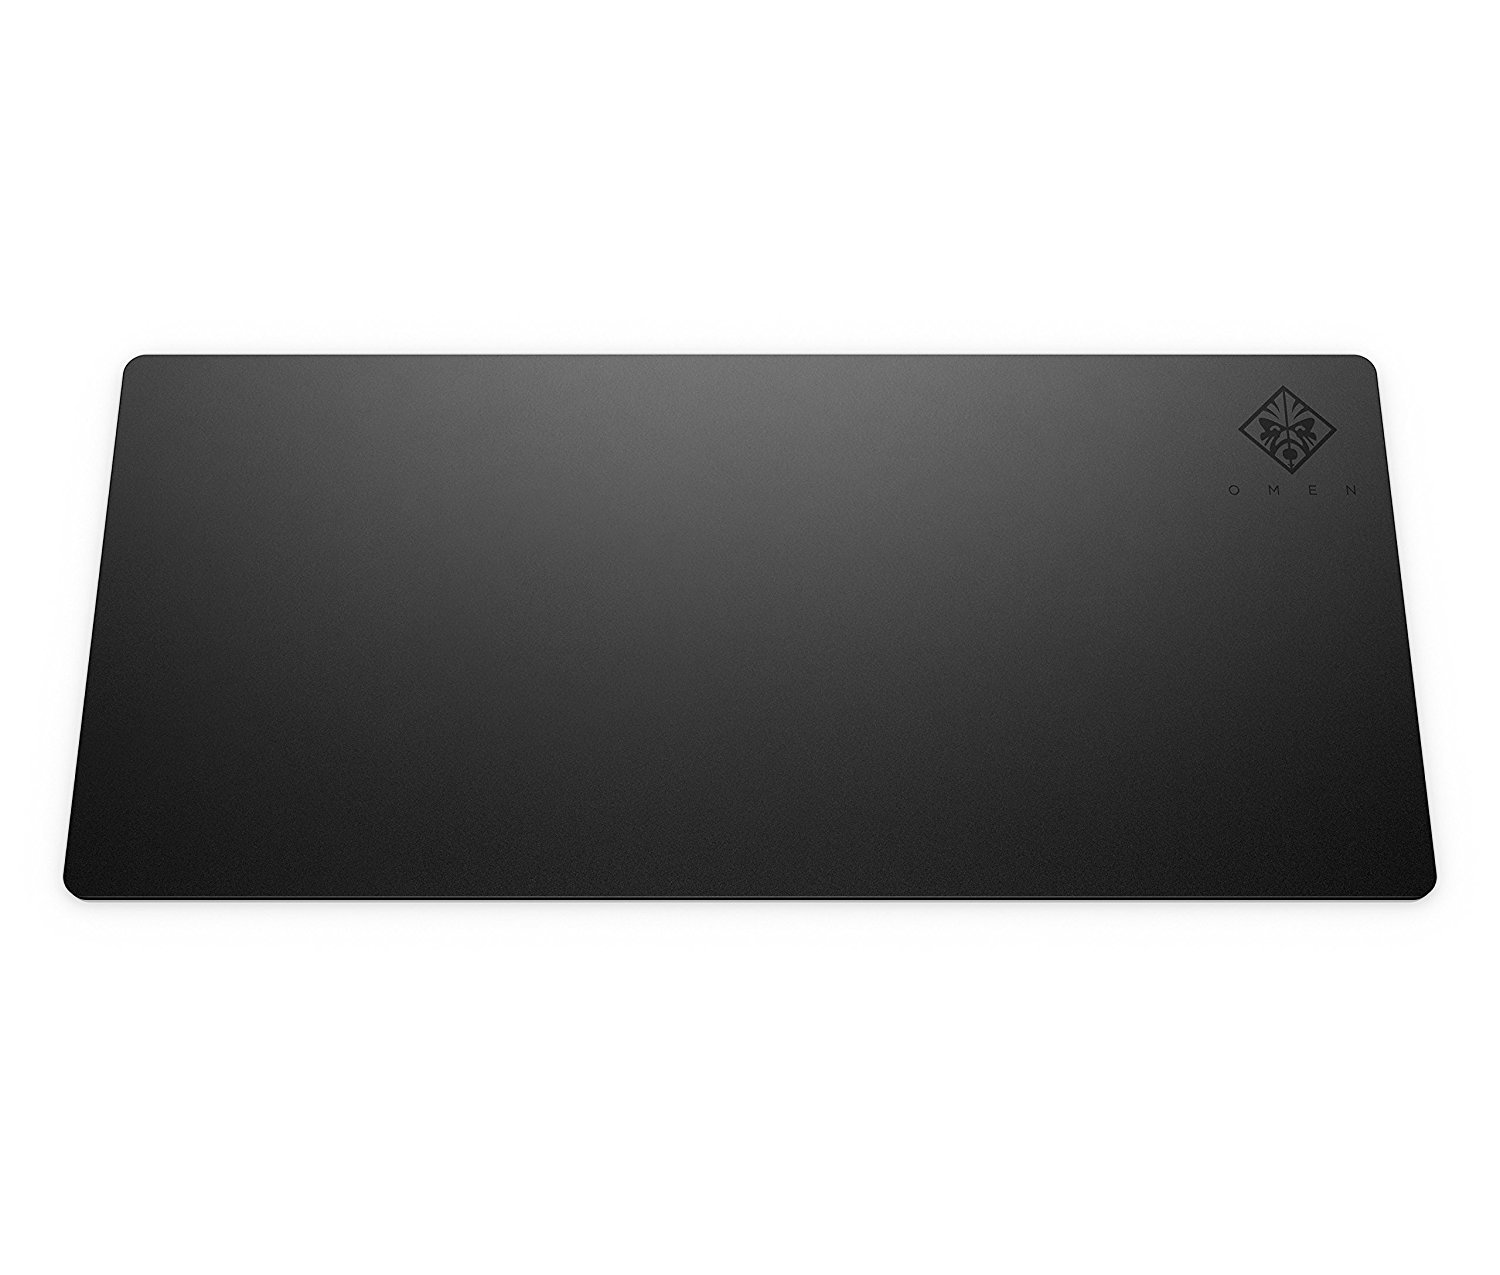 OMEN 300 Rectangular Gaming Mouse Pad for PC image